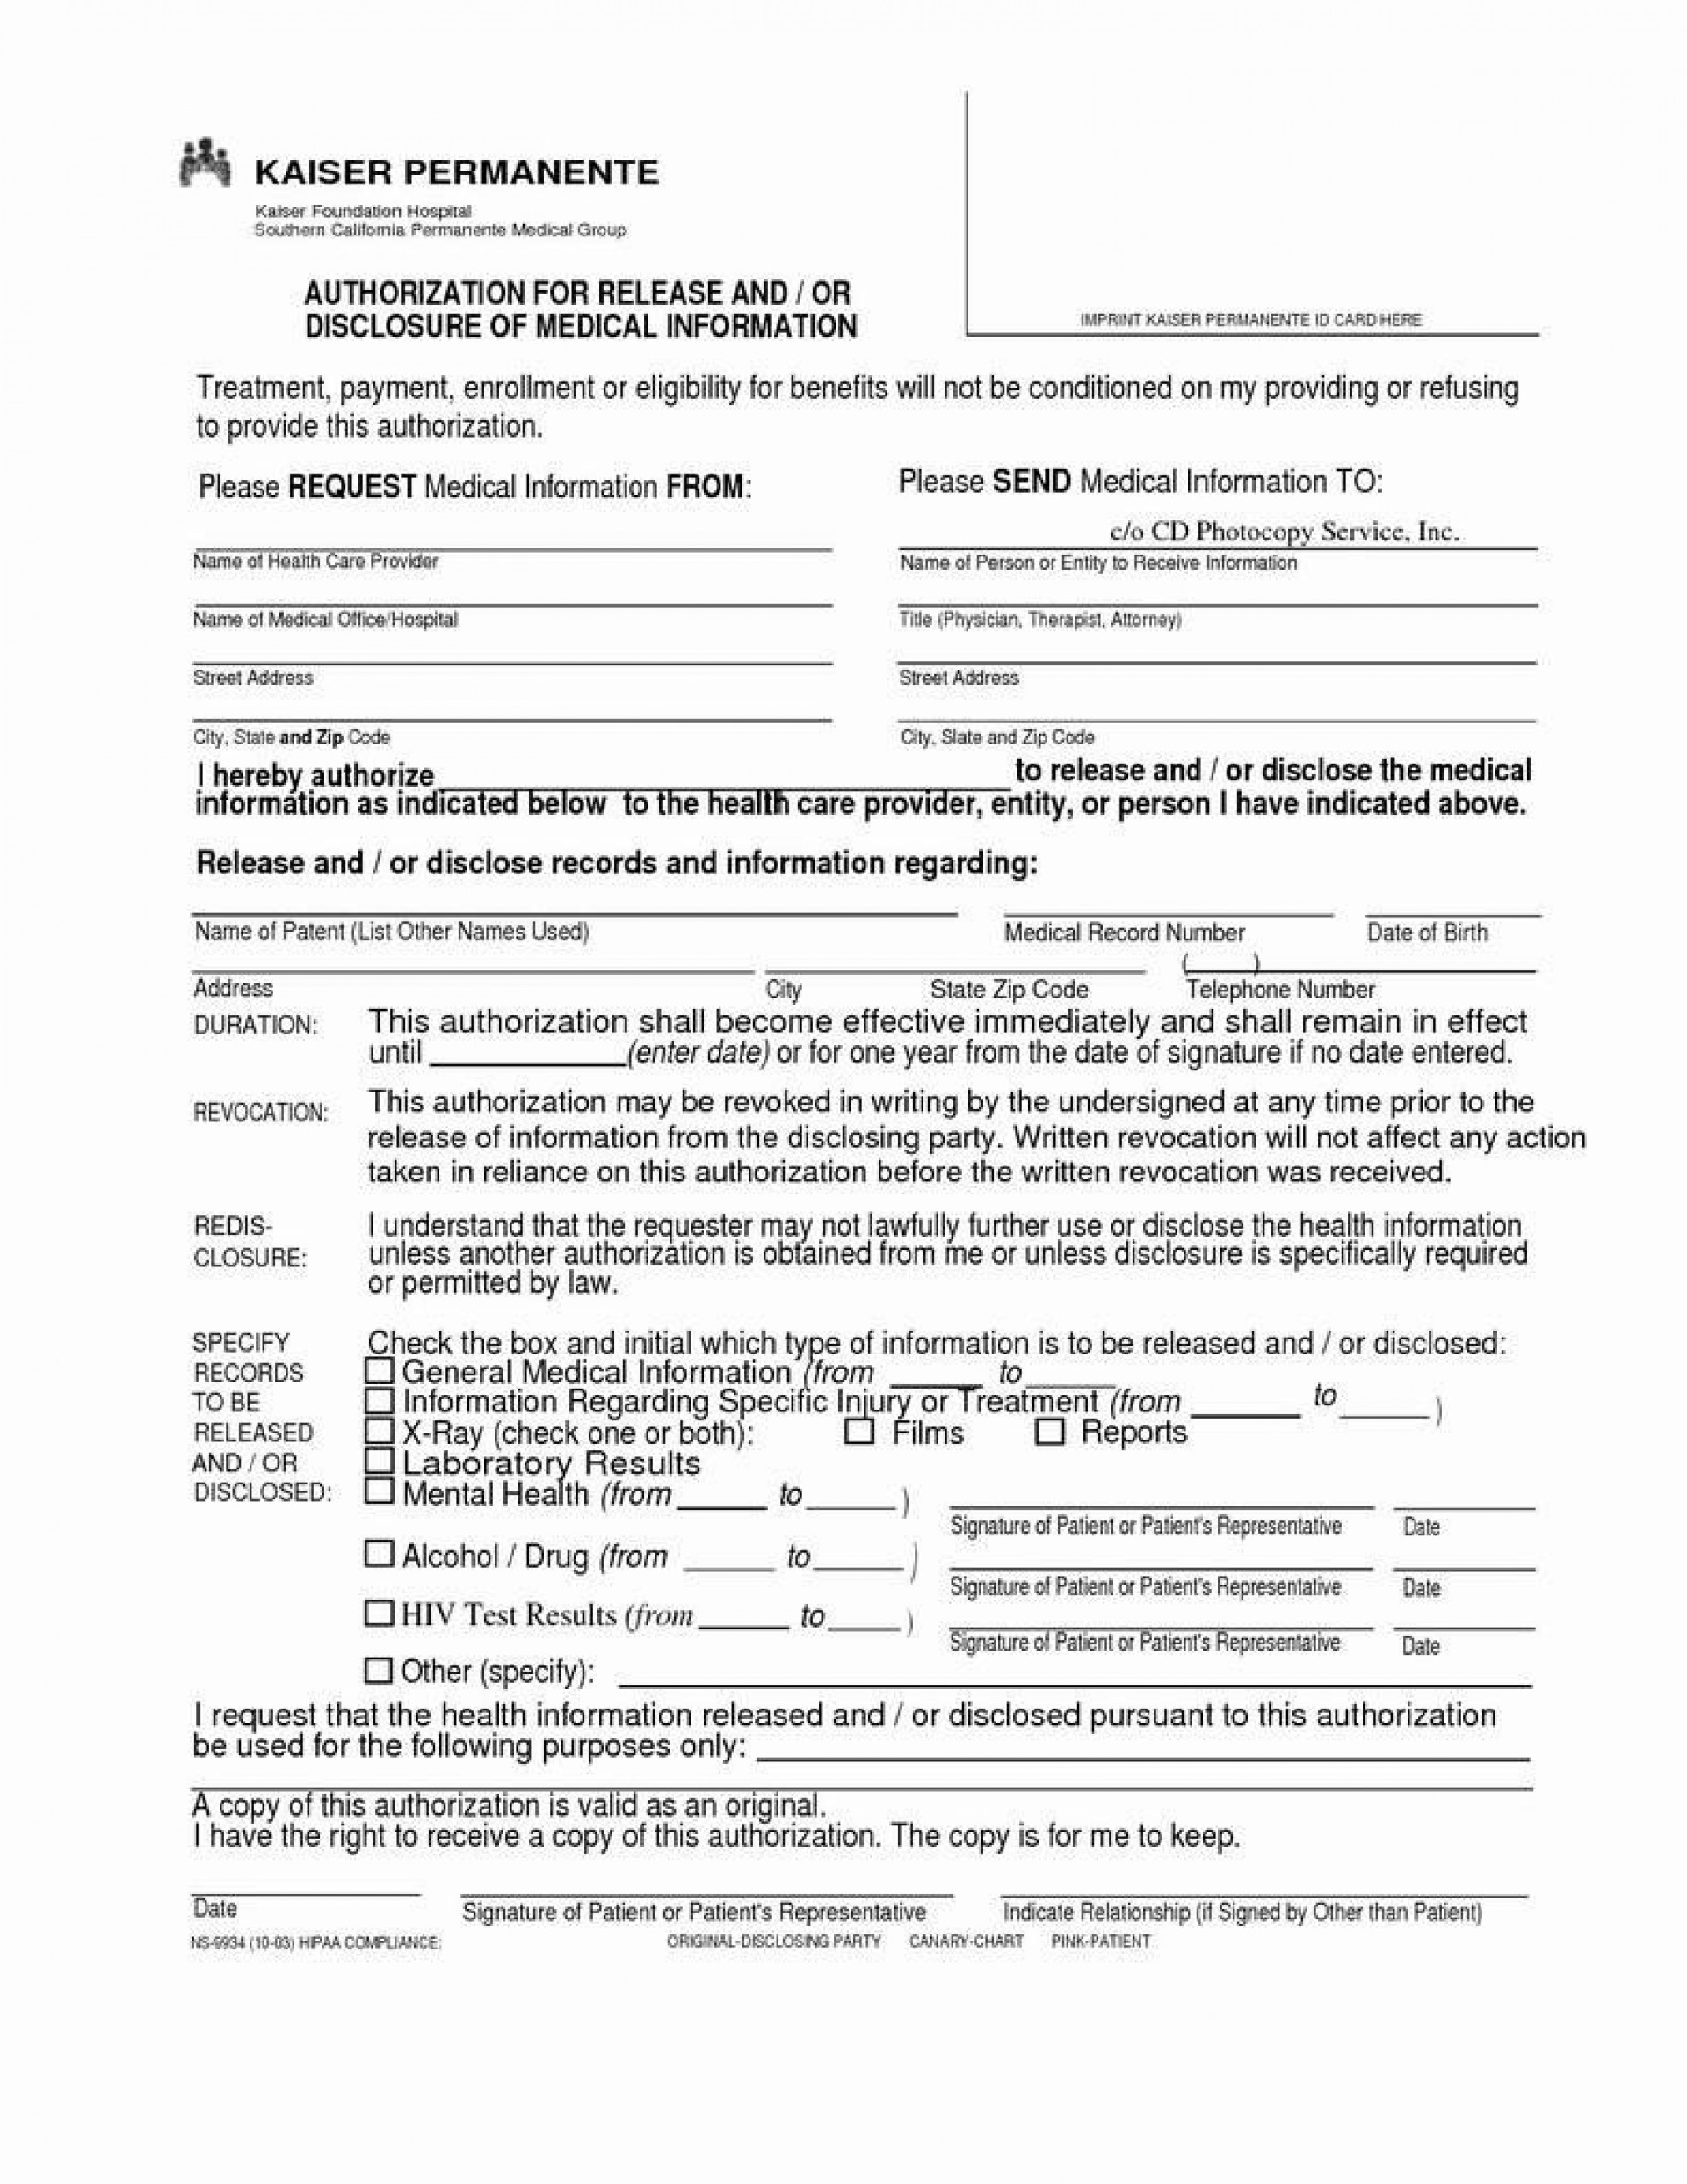 007 Wonderful Free Hospital Discharge Form Template Inspiration 1920